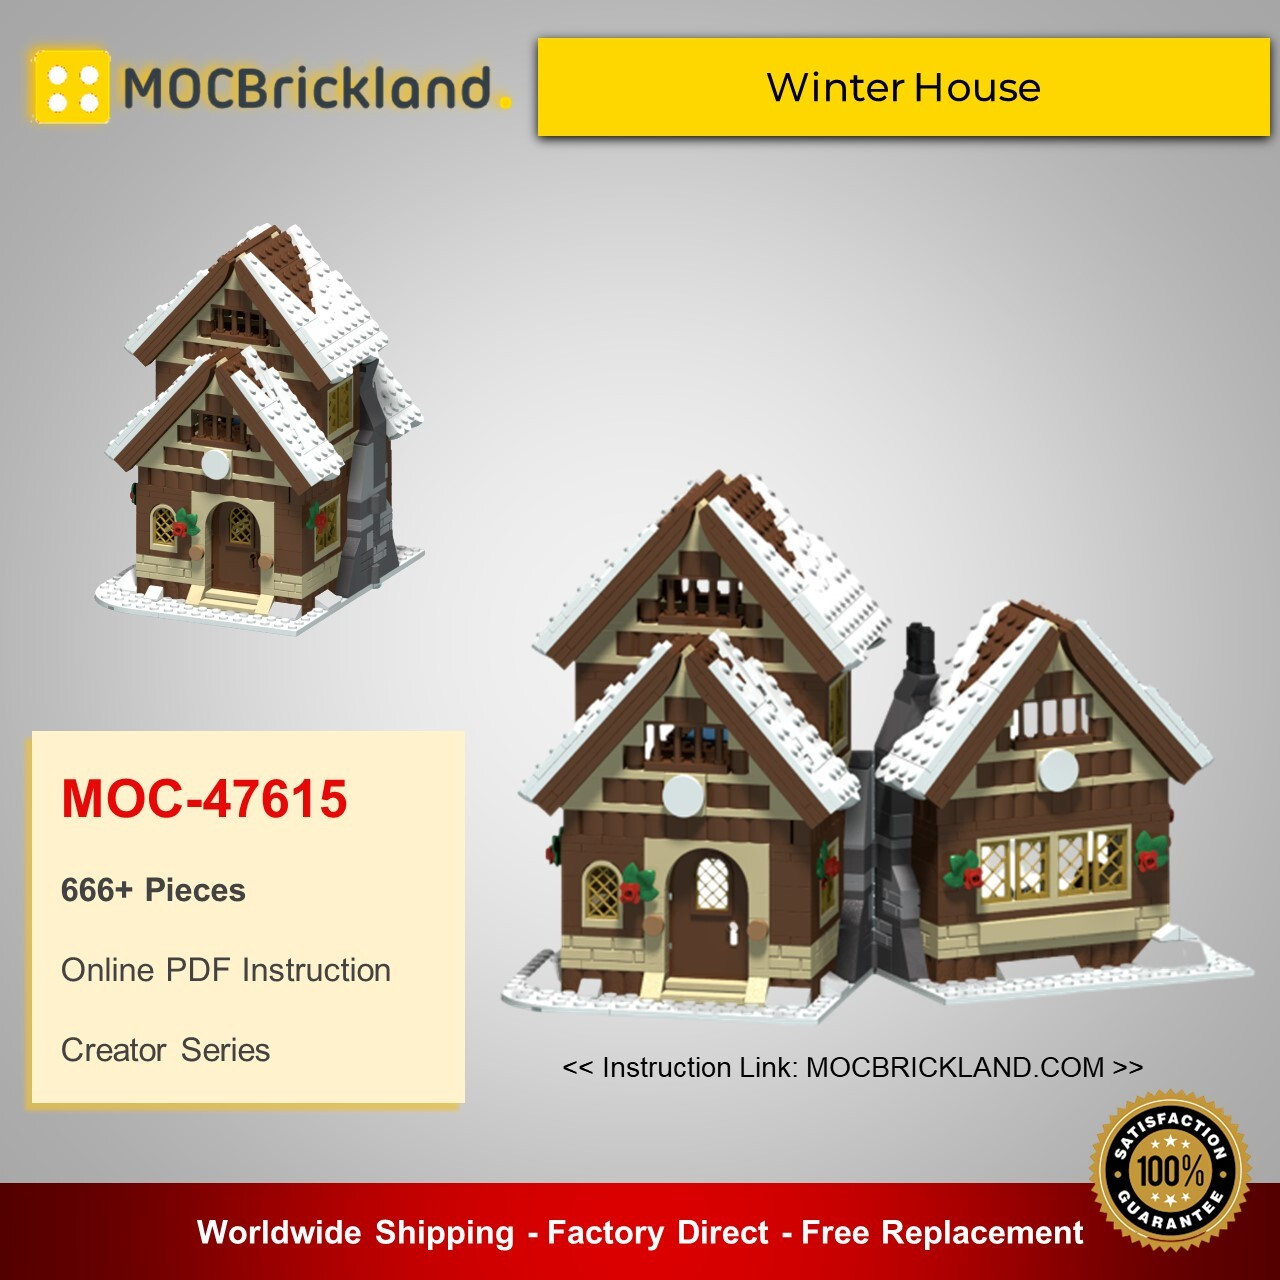 Creator moc-47615 winter house by mx32 mocbrickland